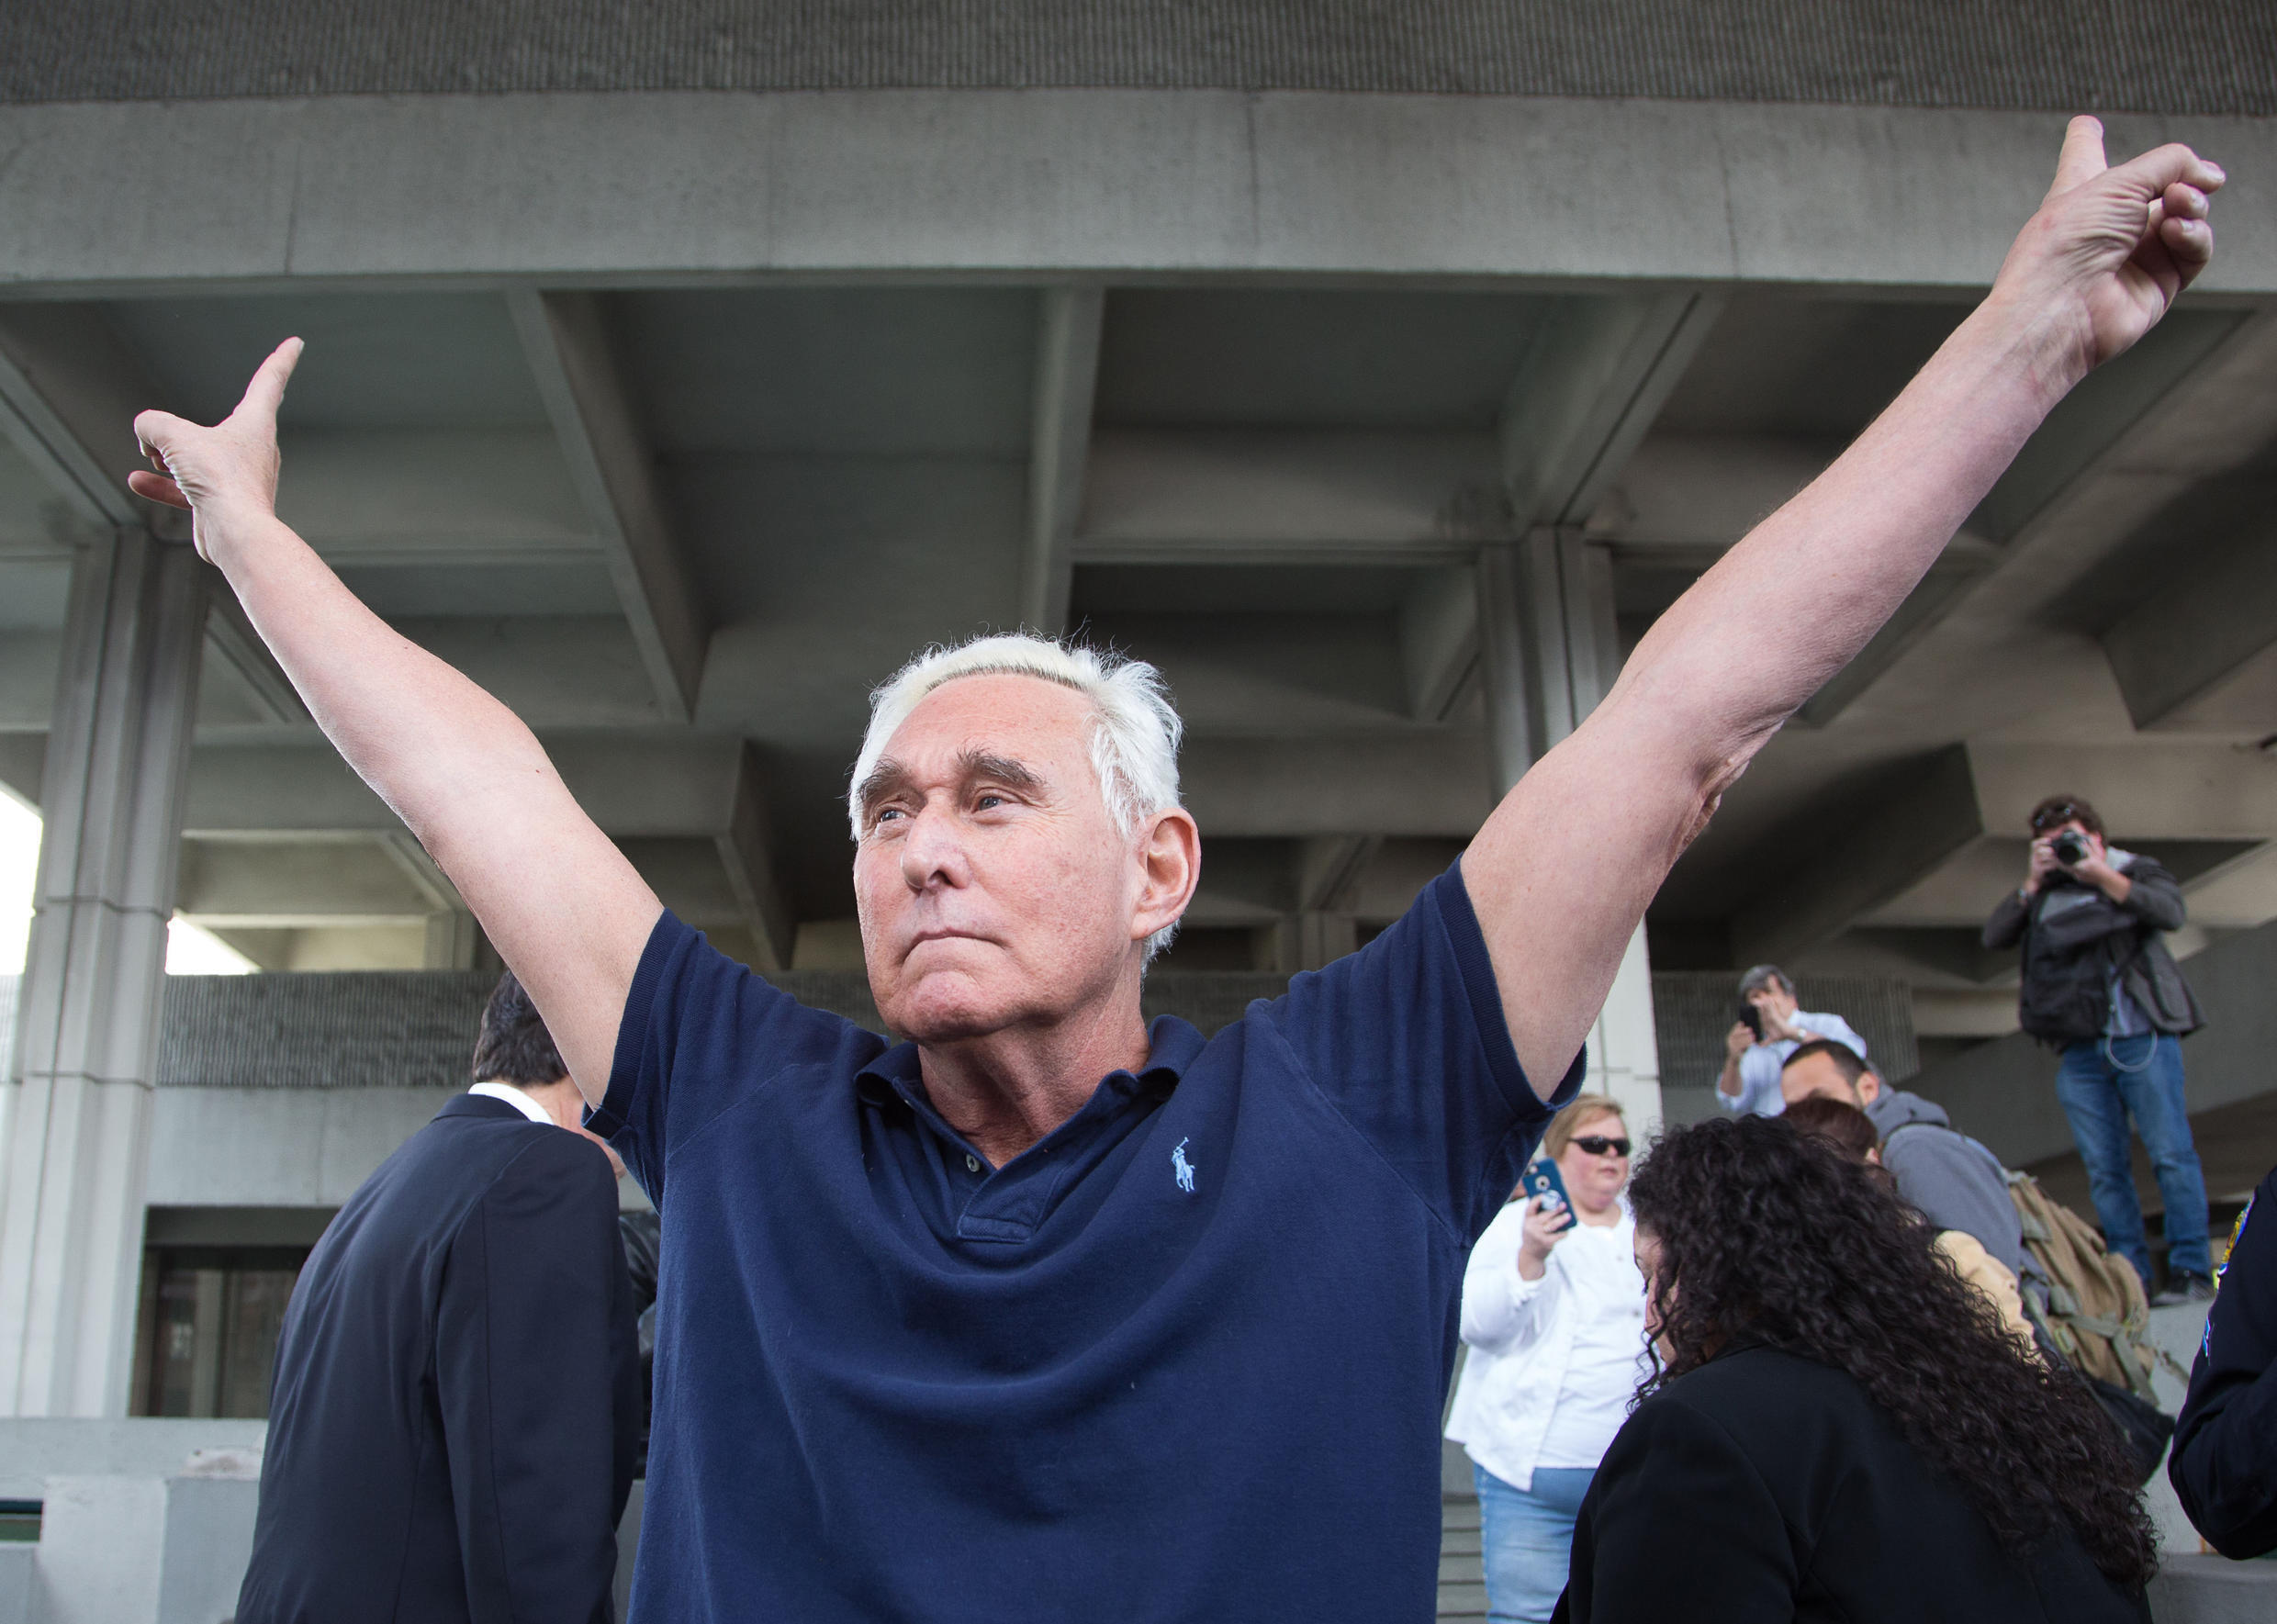 File photo taken Jan. 25, 2019 of Roger Stone outside court in Fort Lauderdale, Florida.